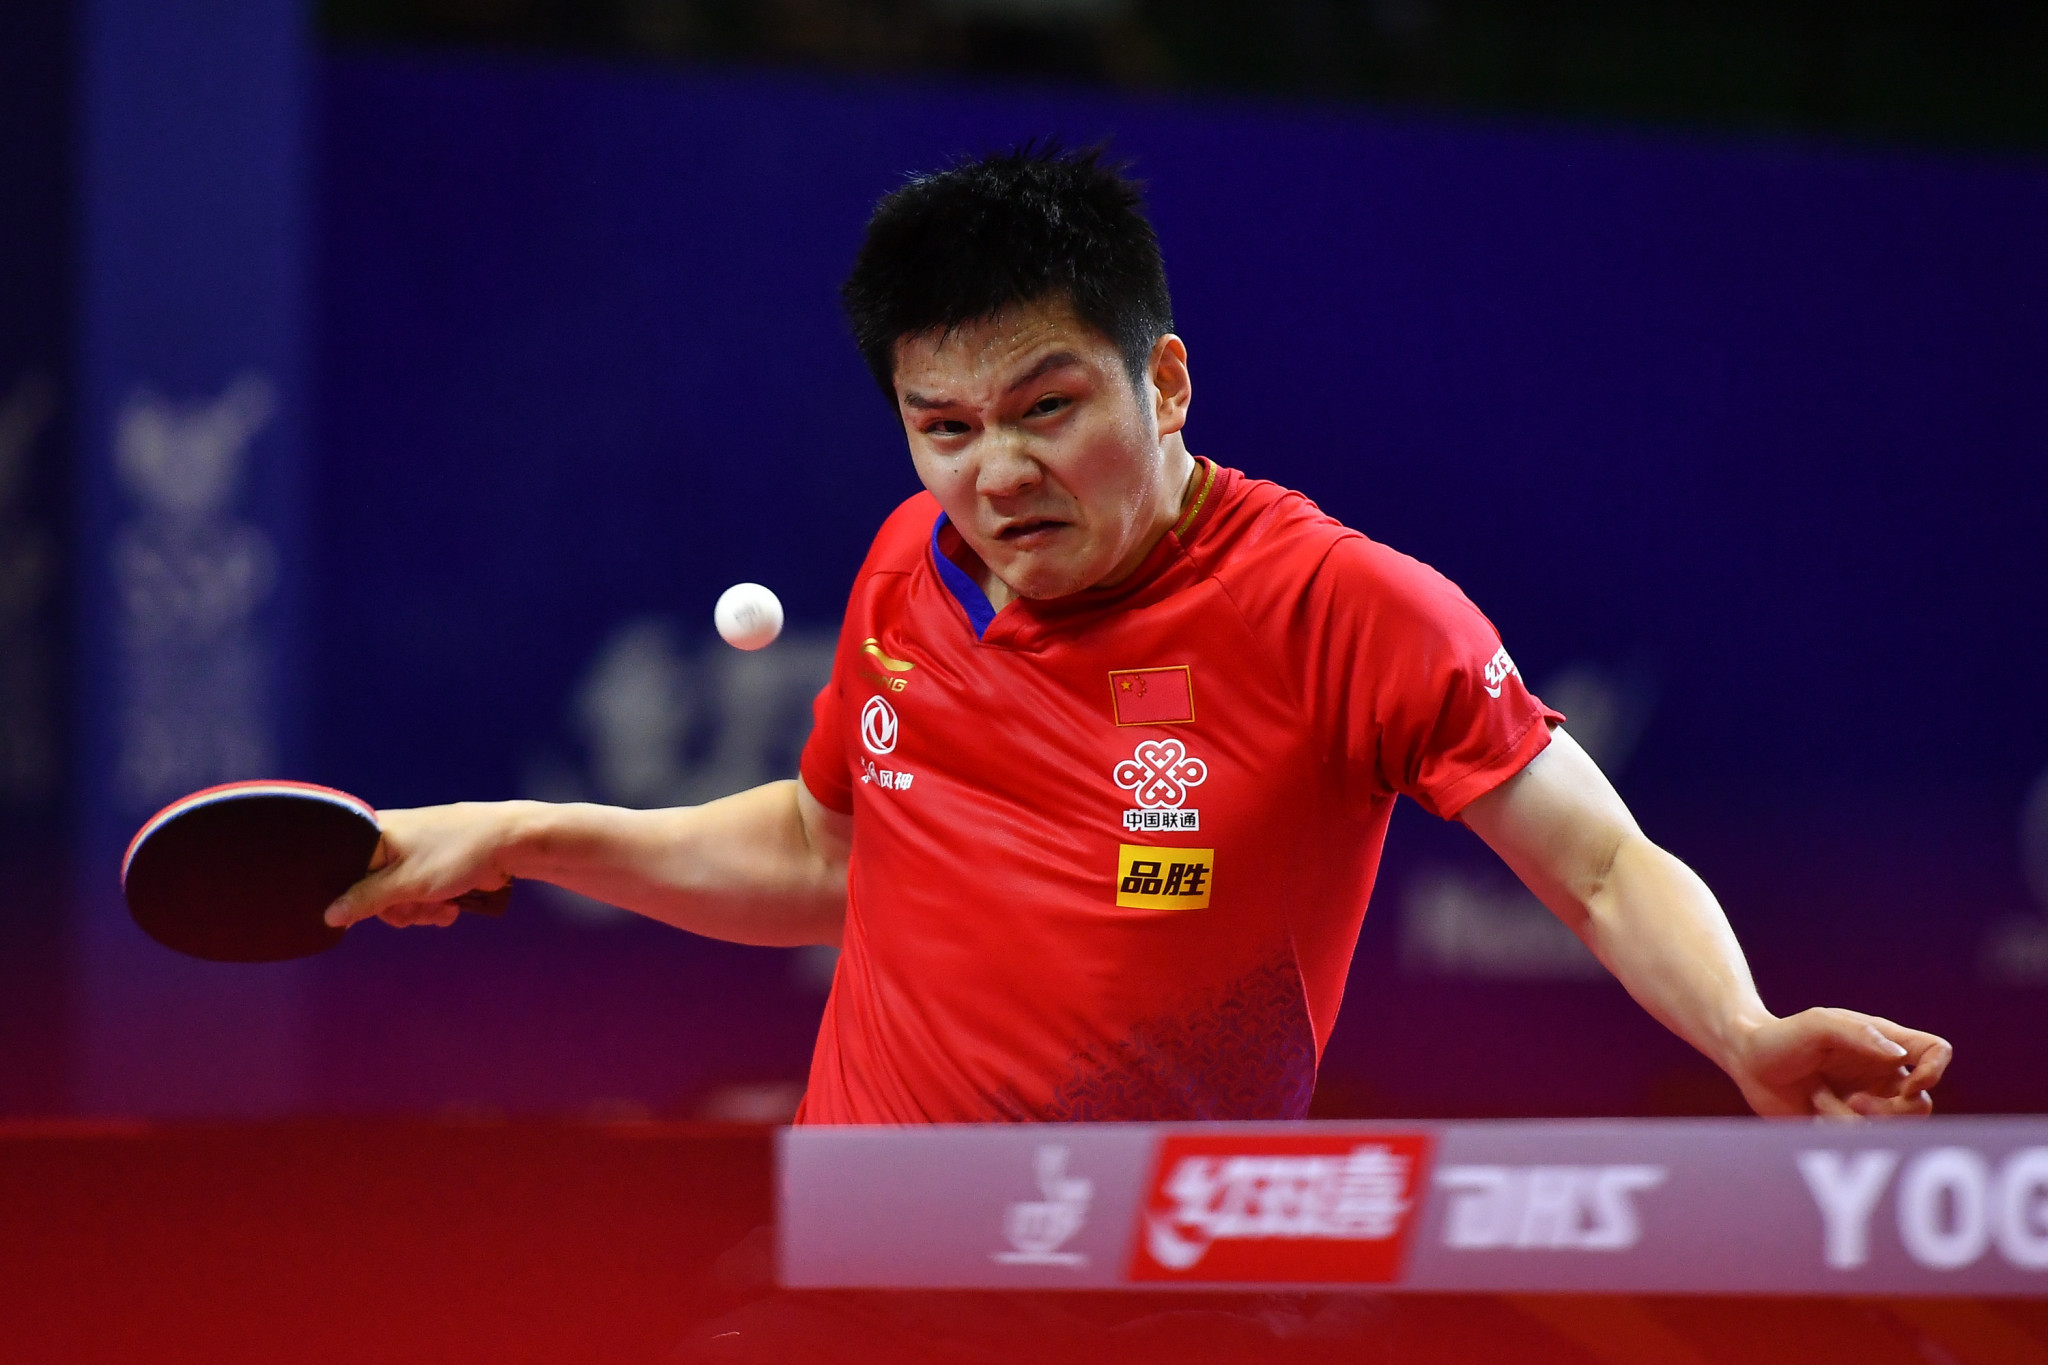 Fan Zhendong is looking for a record fourth men's singles title at the ITTF Swedish Open ©Getty Images